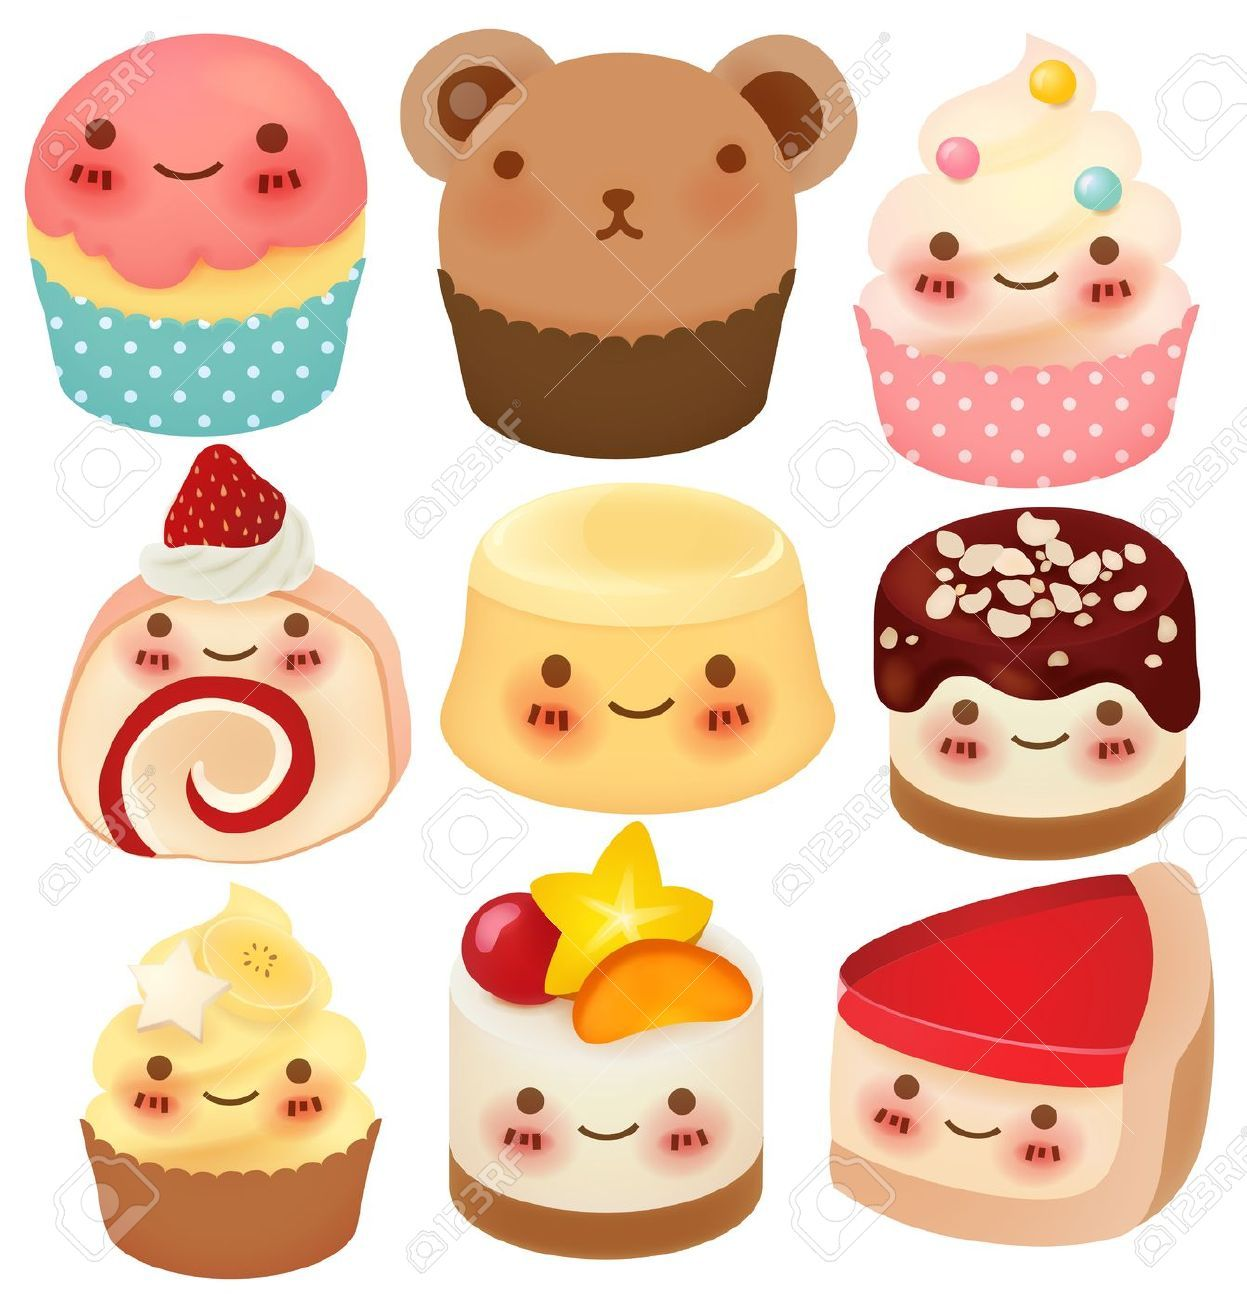 Cute Cartoon Cake Images : 20892887-Collection-of-Cute-Dessert--Stock-Vector-cartoon ...